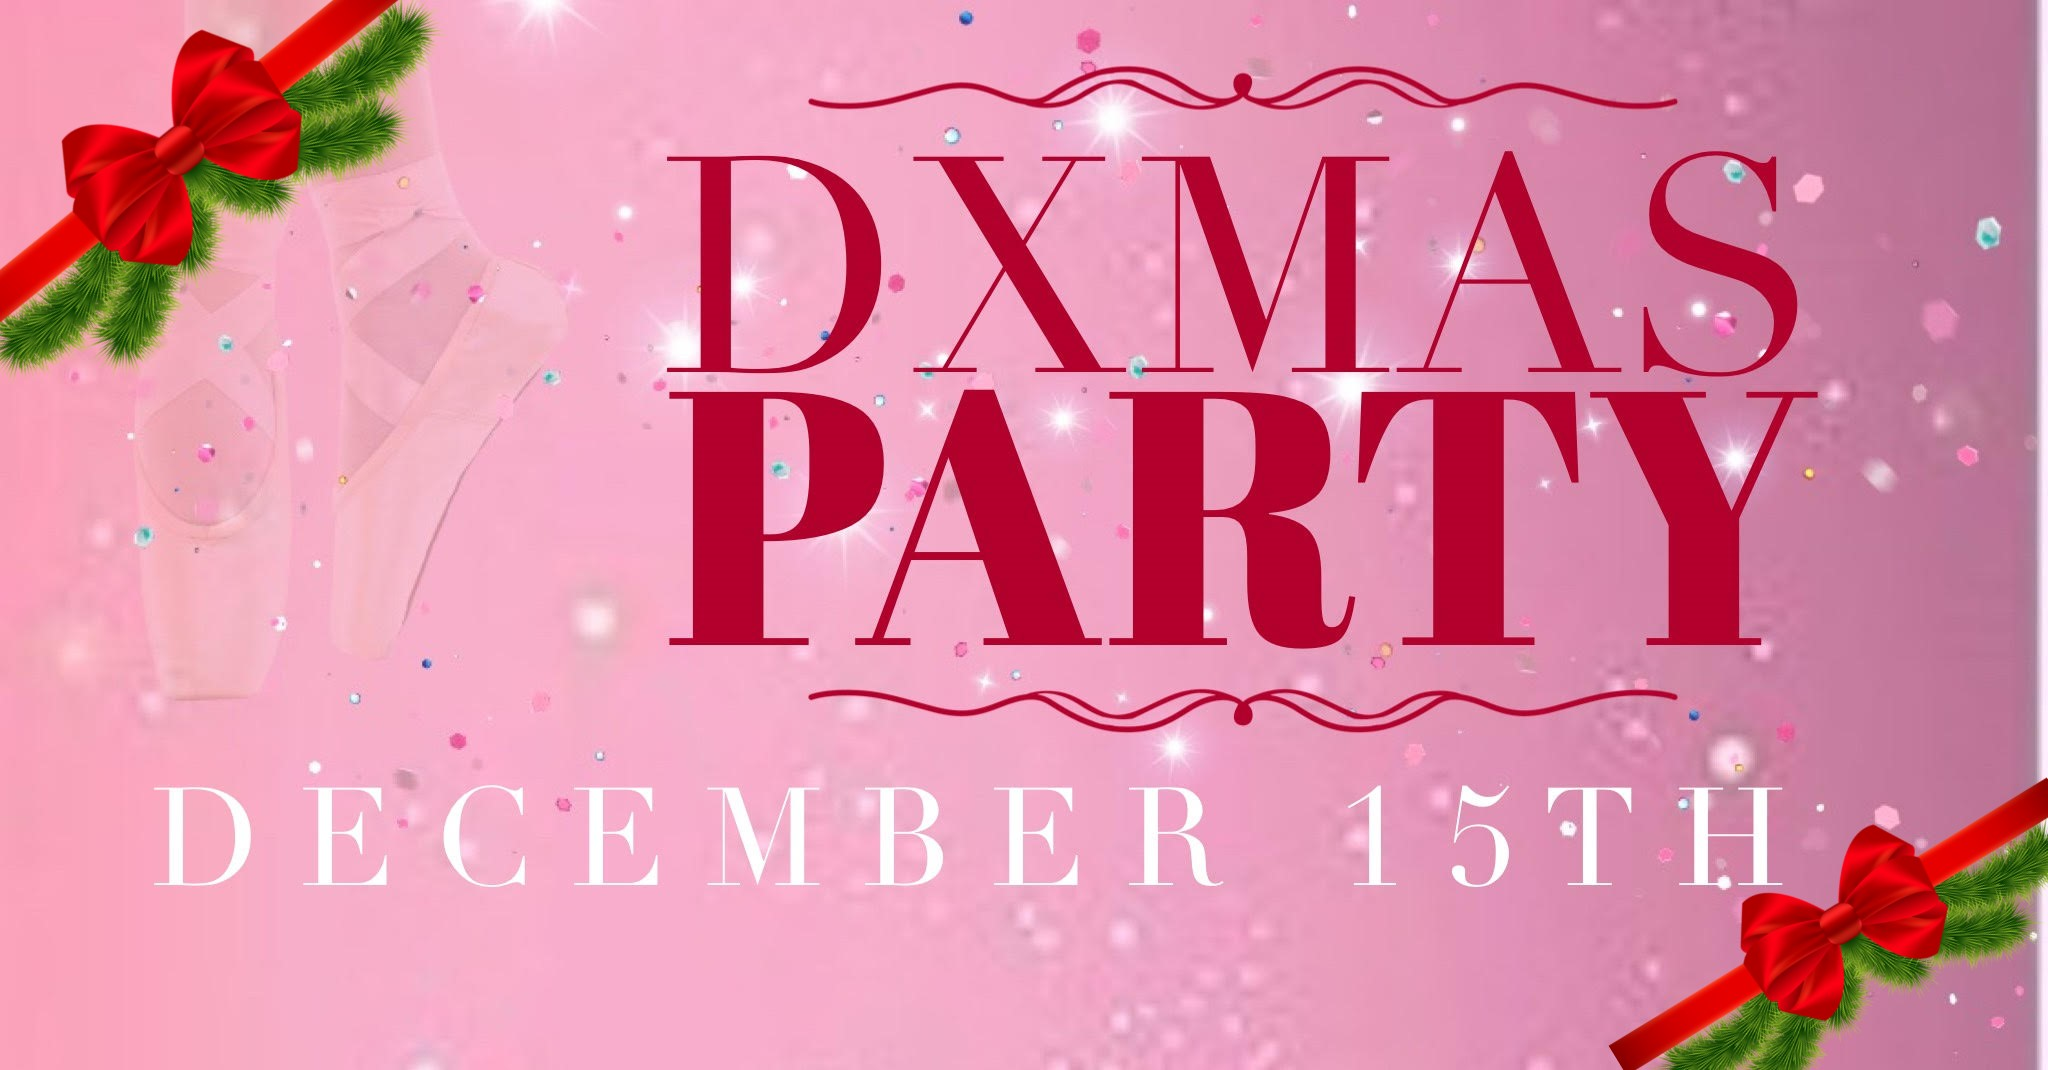 dancexcetera party cover image with bow.jpg